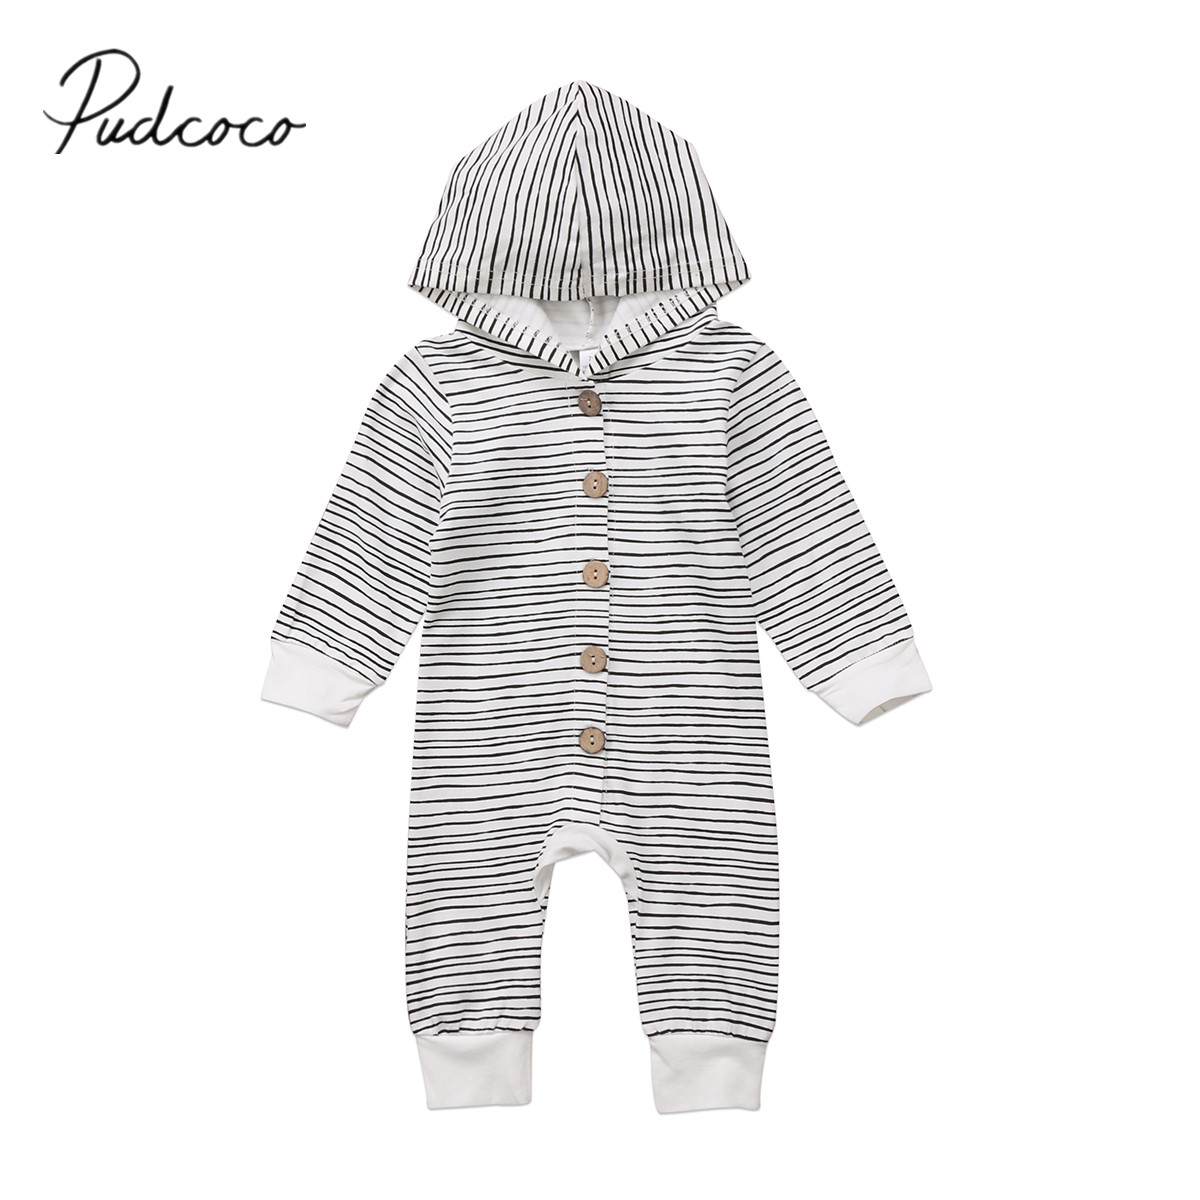 2018 Brand New Toddler Newborn Baby Boy Girl Warm Infant Romper Striped Jumpsuit Hooded Clothes Long Innrech Market.com